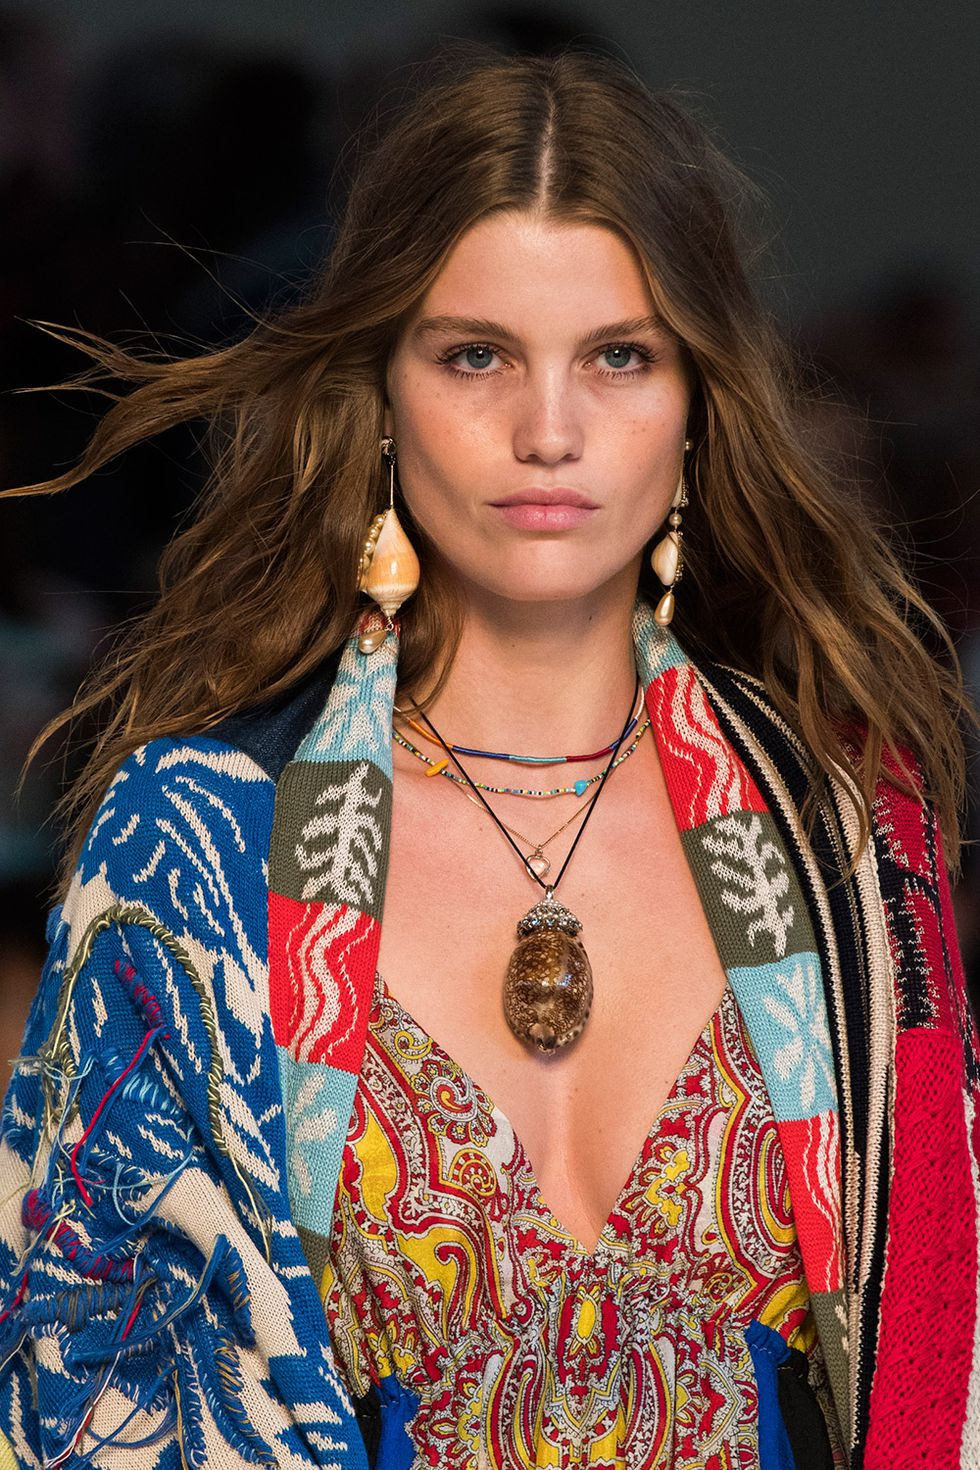 spring-summer-2019-hair-trends-natural-movement-etro-imax-1539006238